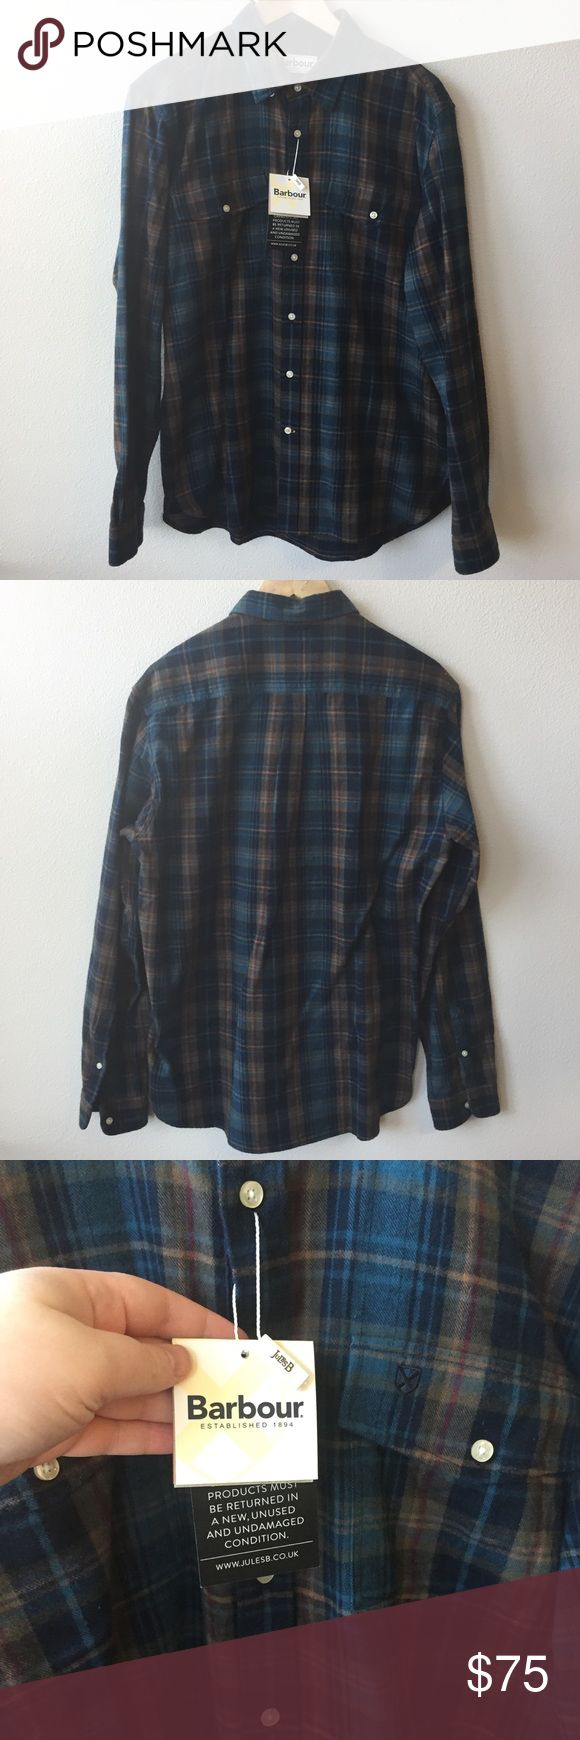 NEW Barbour Mens Button Down Authentic Barbour Button Down Shirt 🔹Size: Medium 🔹Chest pockets with button closure 🔹Plaid print 🔹Subtle Barbour logo on left chest pocket 🔹Medium-weight, will keep you warm without overheating! 💎NEW WITH TAG! No flaws. Barbour Shirts Casual Button Down Shirts